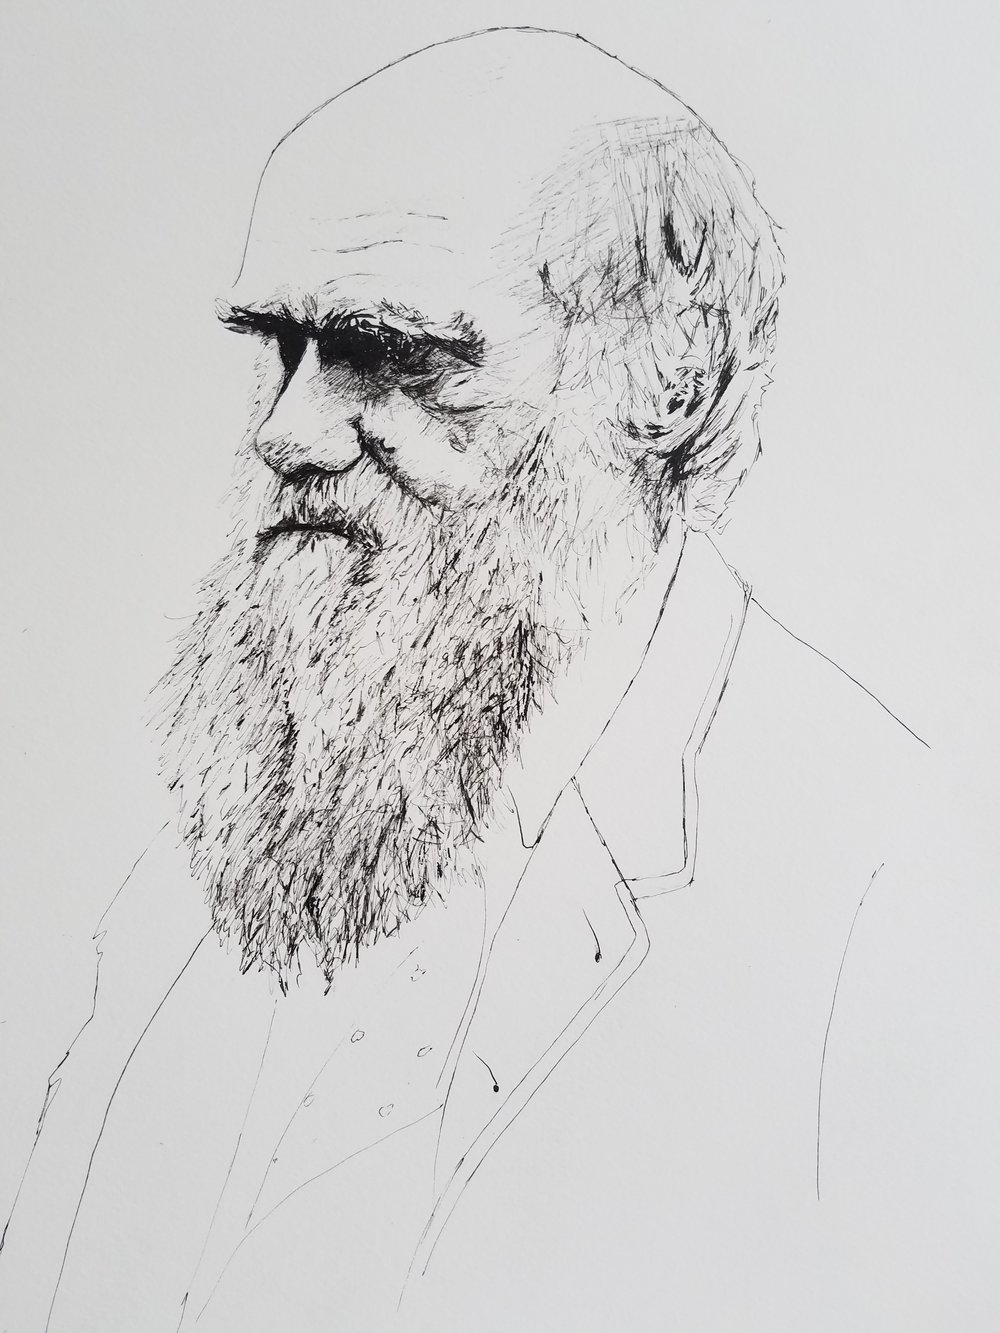 Charles Darwin, pen and ink, 2017